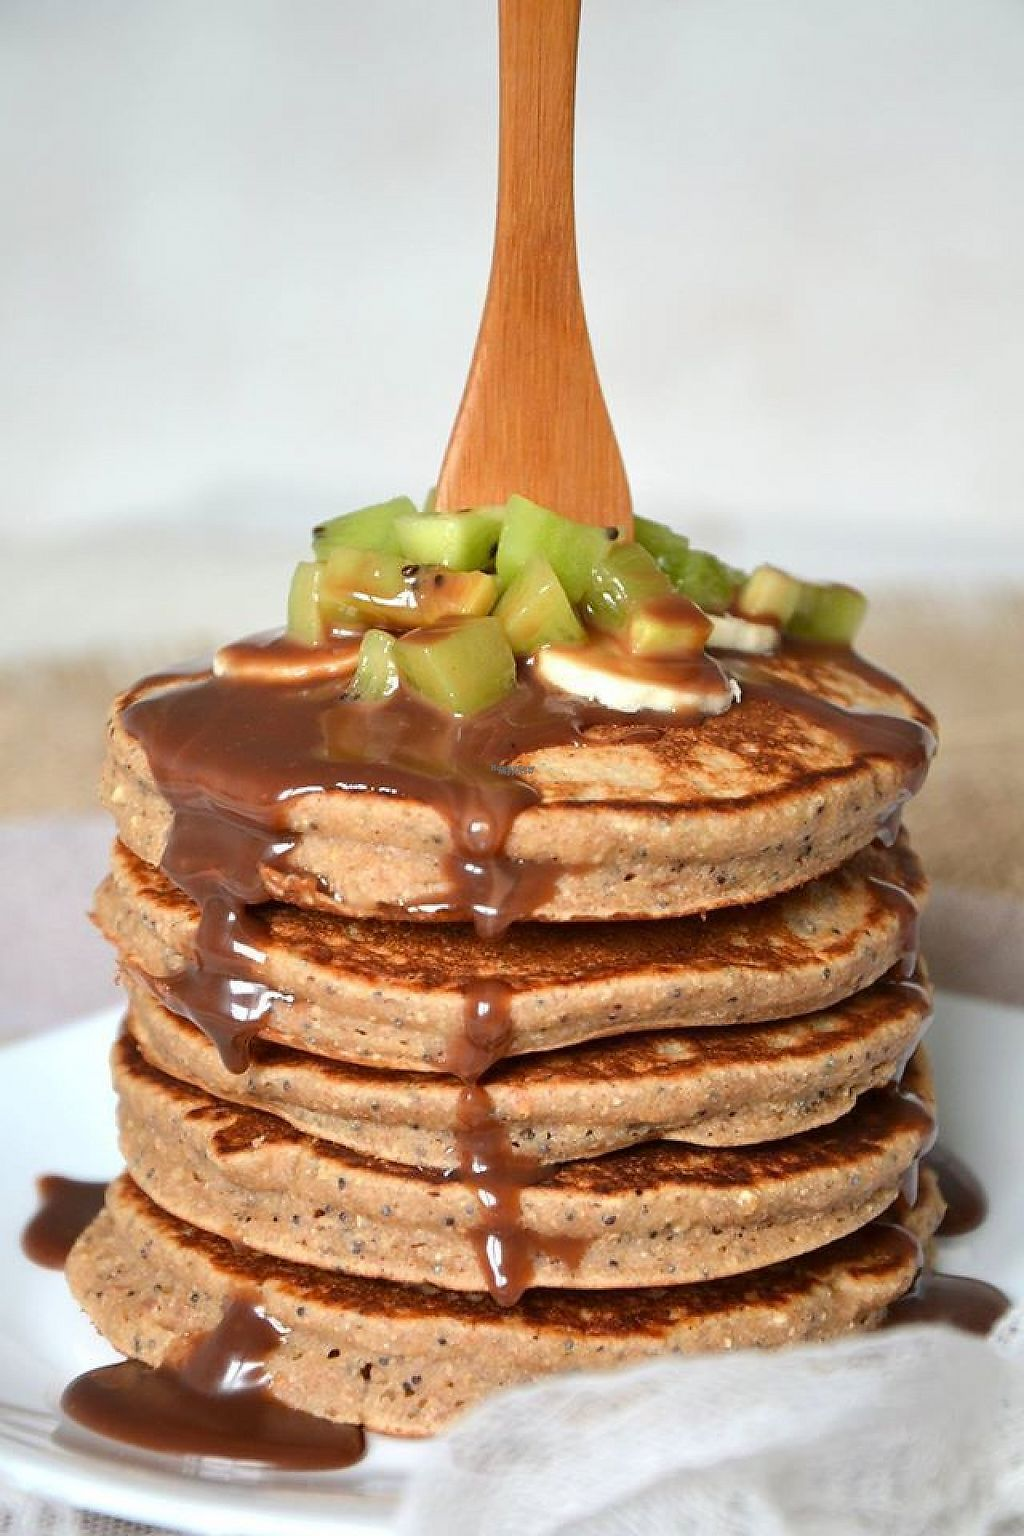 """Photo of La Vie Claire  by <a href=""""/members/profile/community"""">community</a> <br/>vegan pancakes   <br/> February 4, 2017  - <a href='/contact/abuse/image/72015/221860'>Report</a>"""